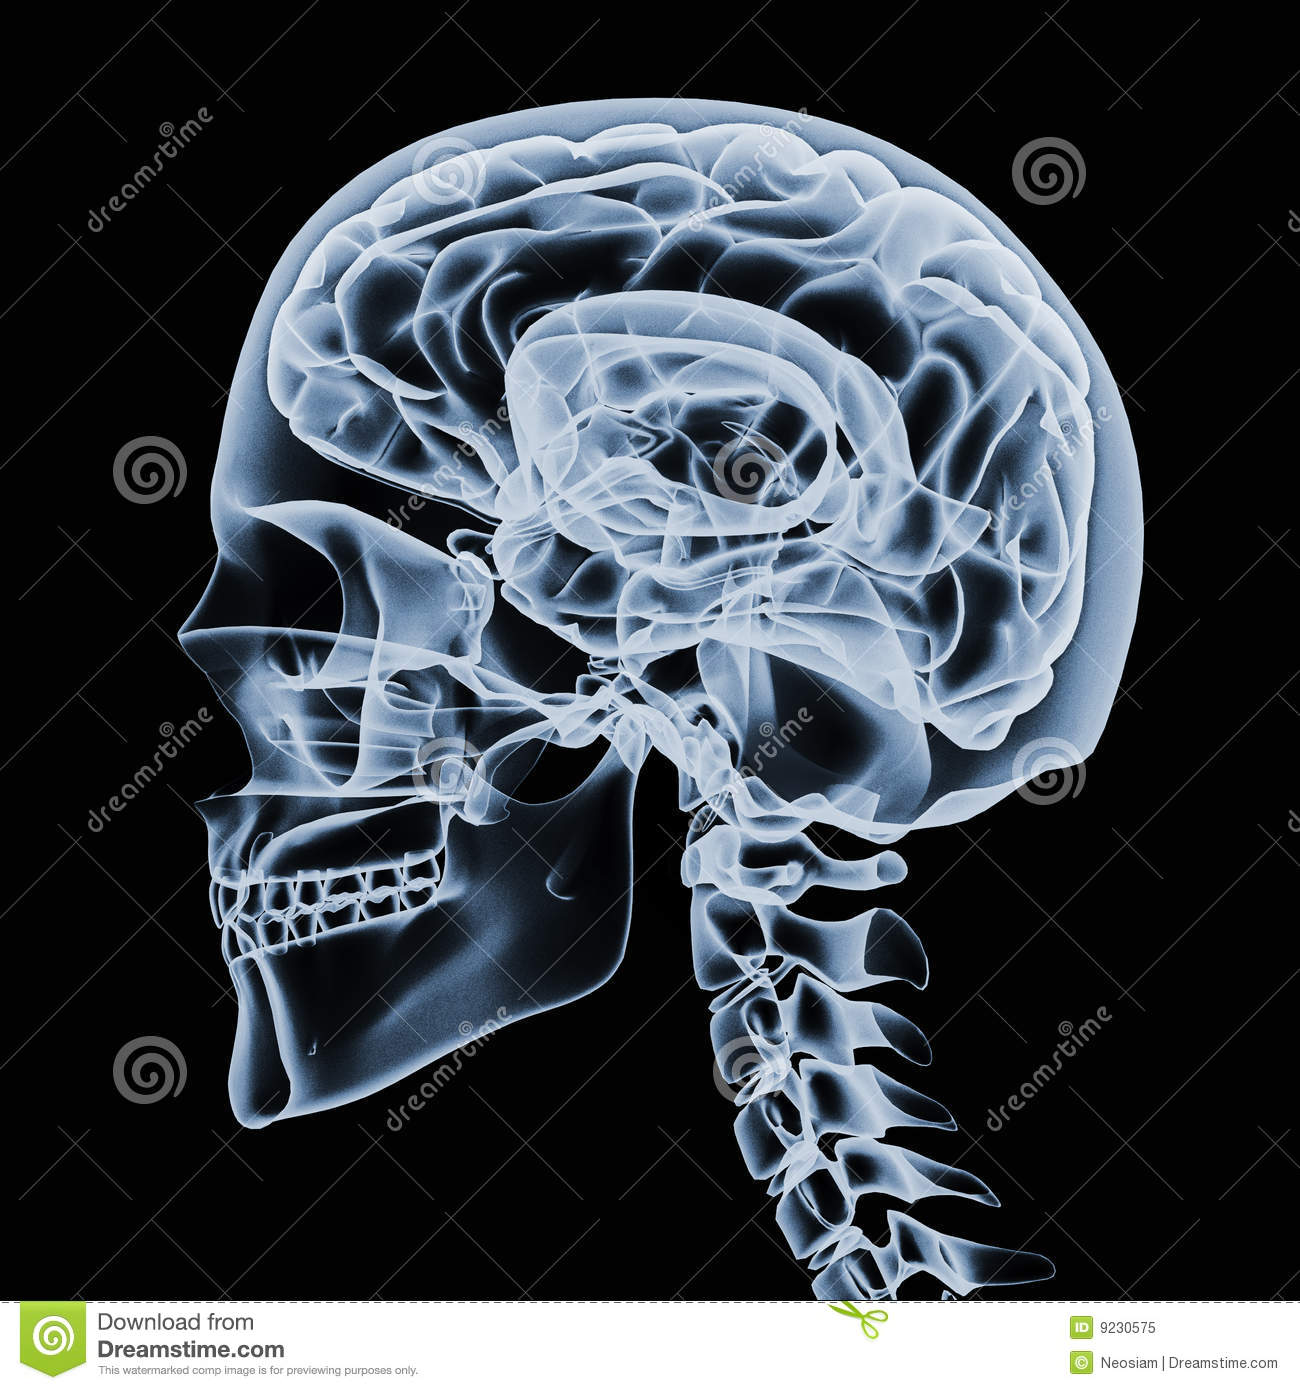 Skeleton Head Wallpaper 3d X Ray Of A Human Head Royalty Free Stock Photo Image